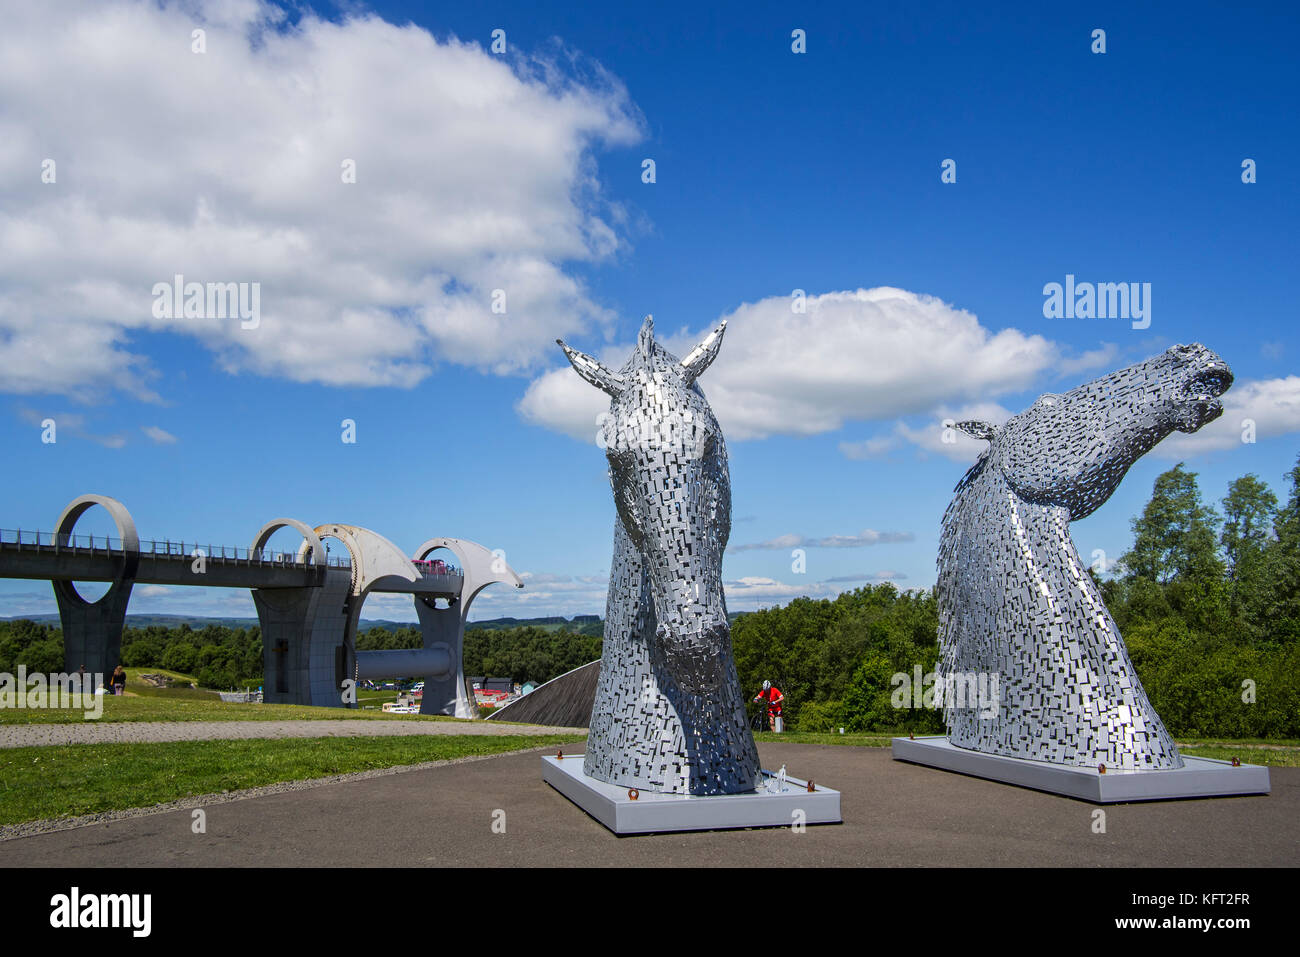 The Kelpies, horse-head sculptures at the Falkirk Wheel, rotating boat lift in Stirlingshire, Scotland, UK - Stock Image